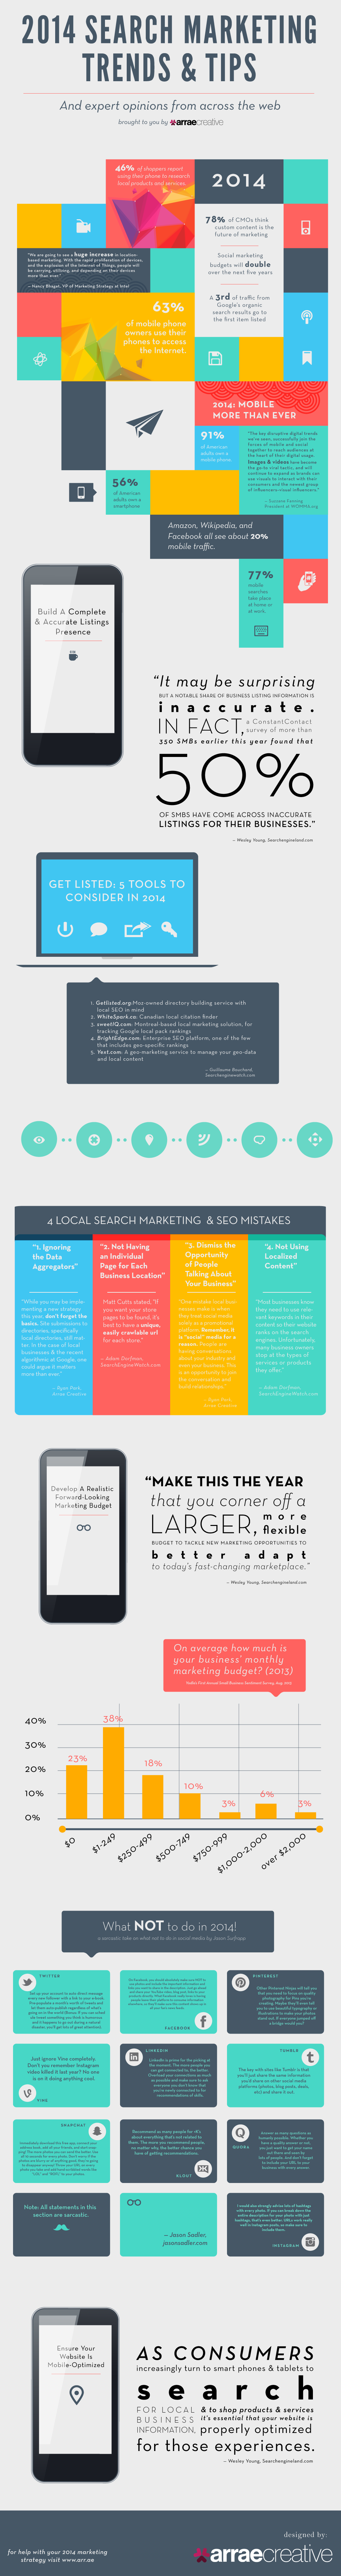 SEM Trends 2014-Infographic